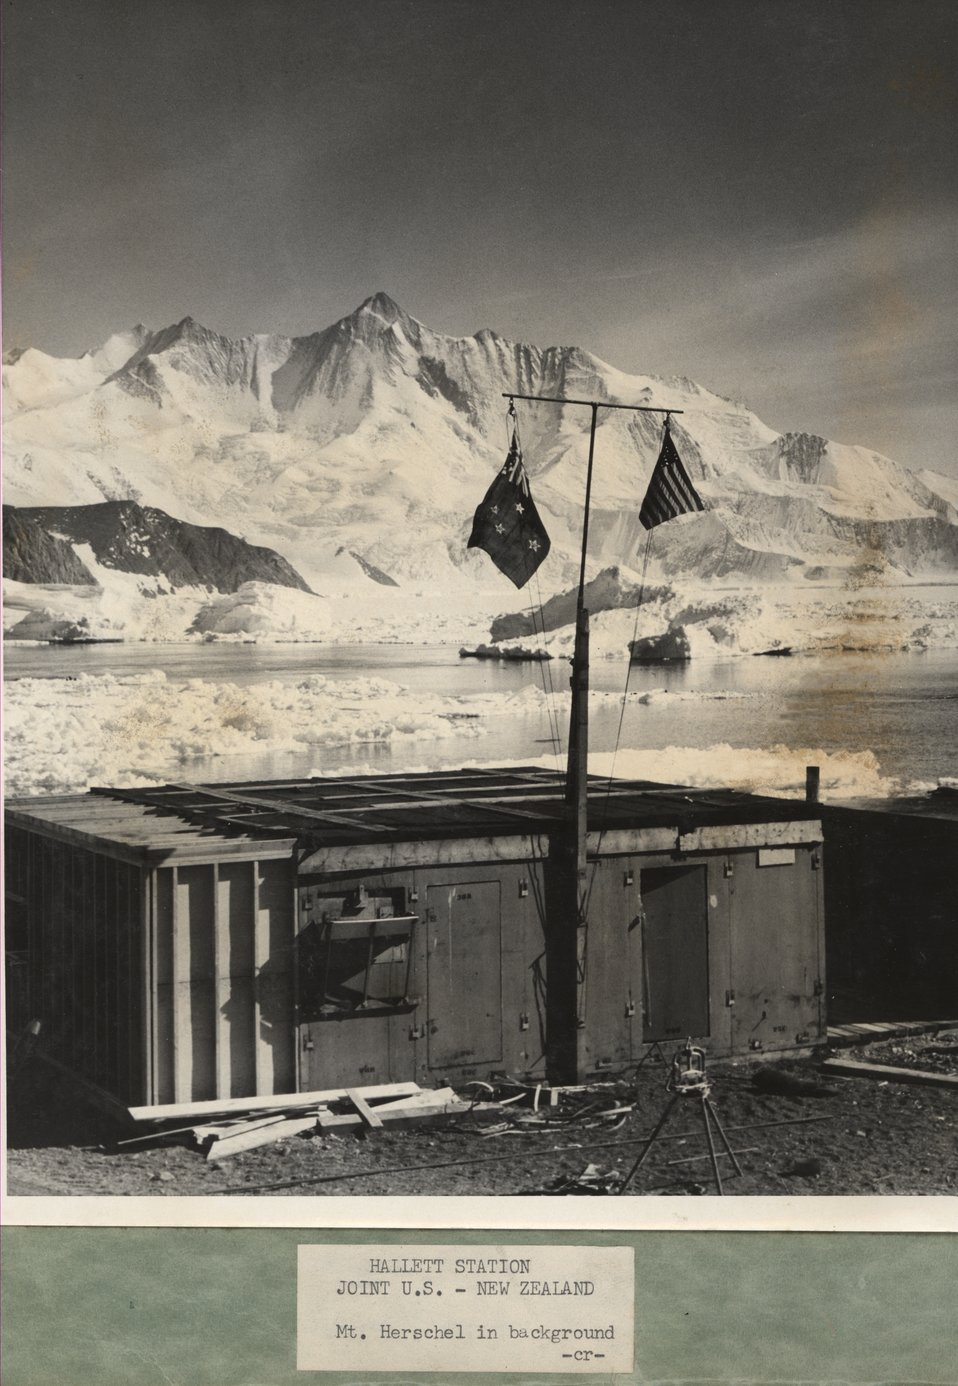 Hallett Station with Mt. Herschel in the background.  Sir Edmund Hillary led an expedition to climb Mt. Herschel in the 1967-1968 summer season.